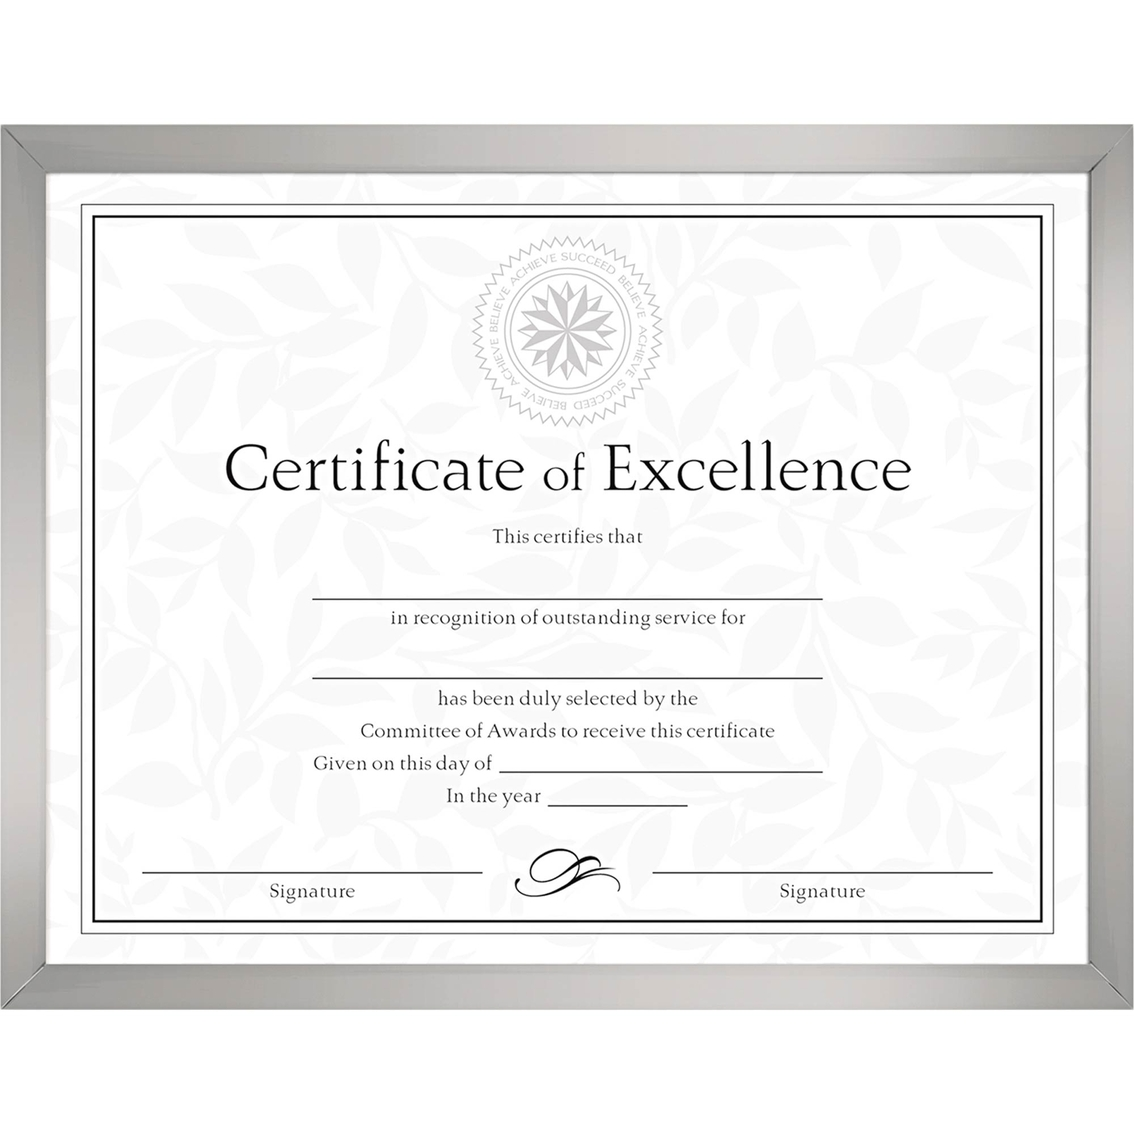 Dax 8 1/2 X 11 In. Value U-channel Document Frame | Frames | Home ...